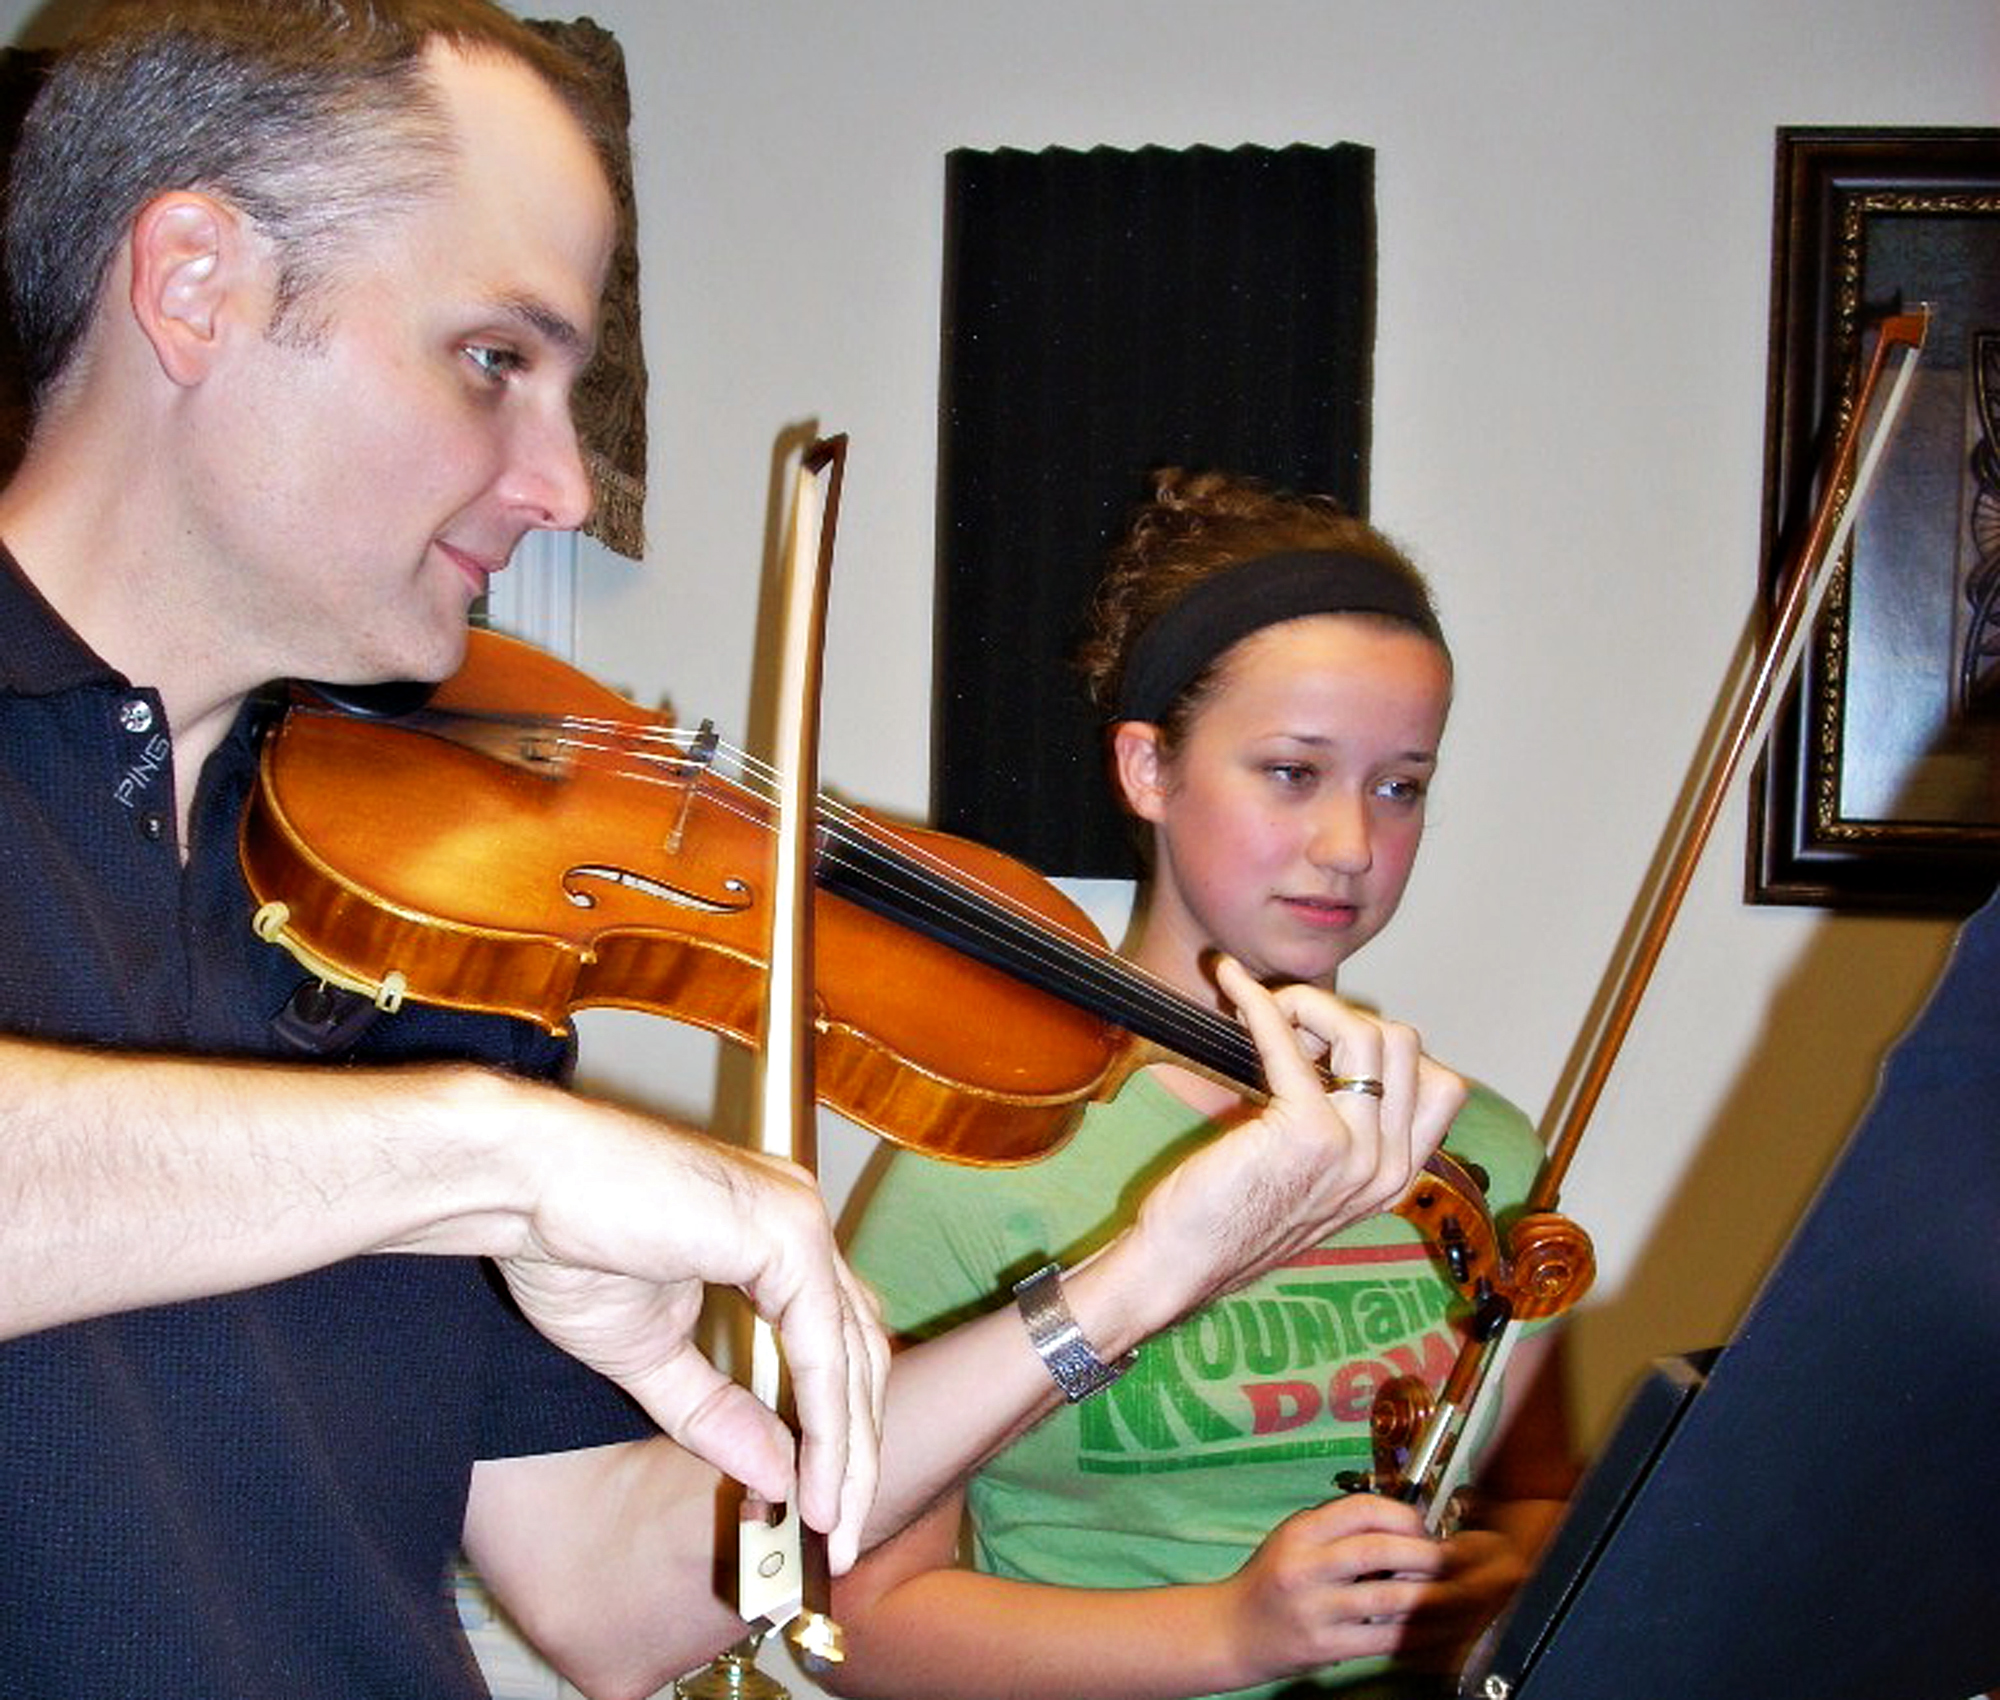 Educate - With over 50 years of combined teaching and performing experience, CSS provides a high quality, well-rounded music education in a positive, enthusiastic, and nurturing learning environment.